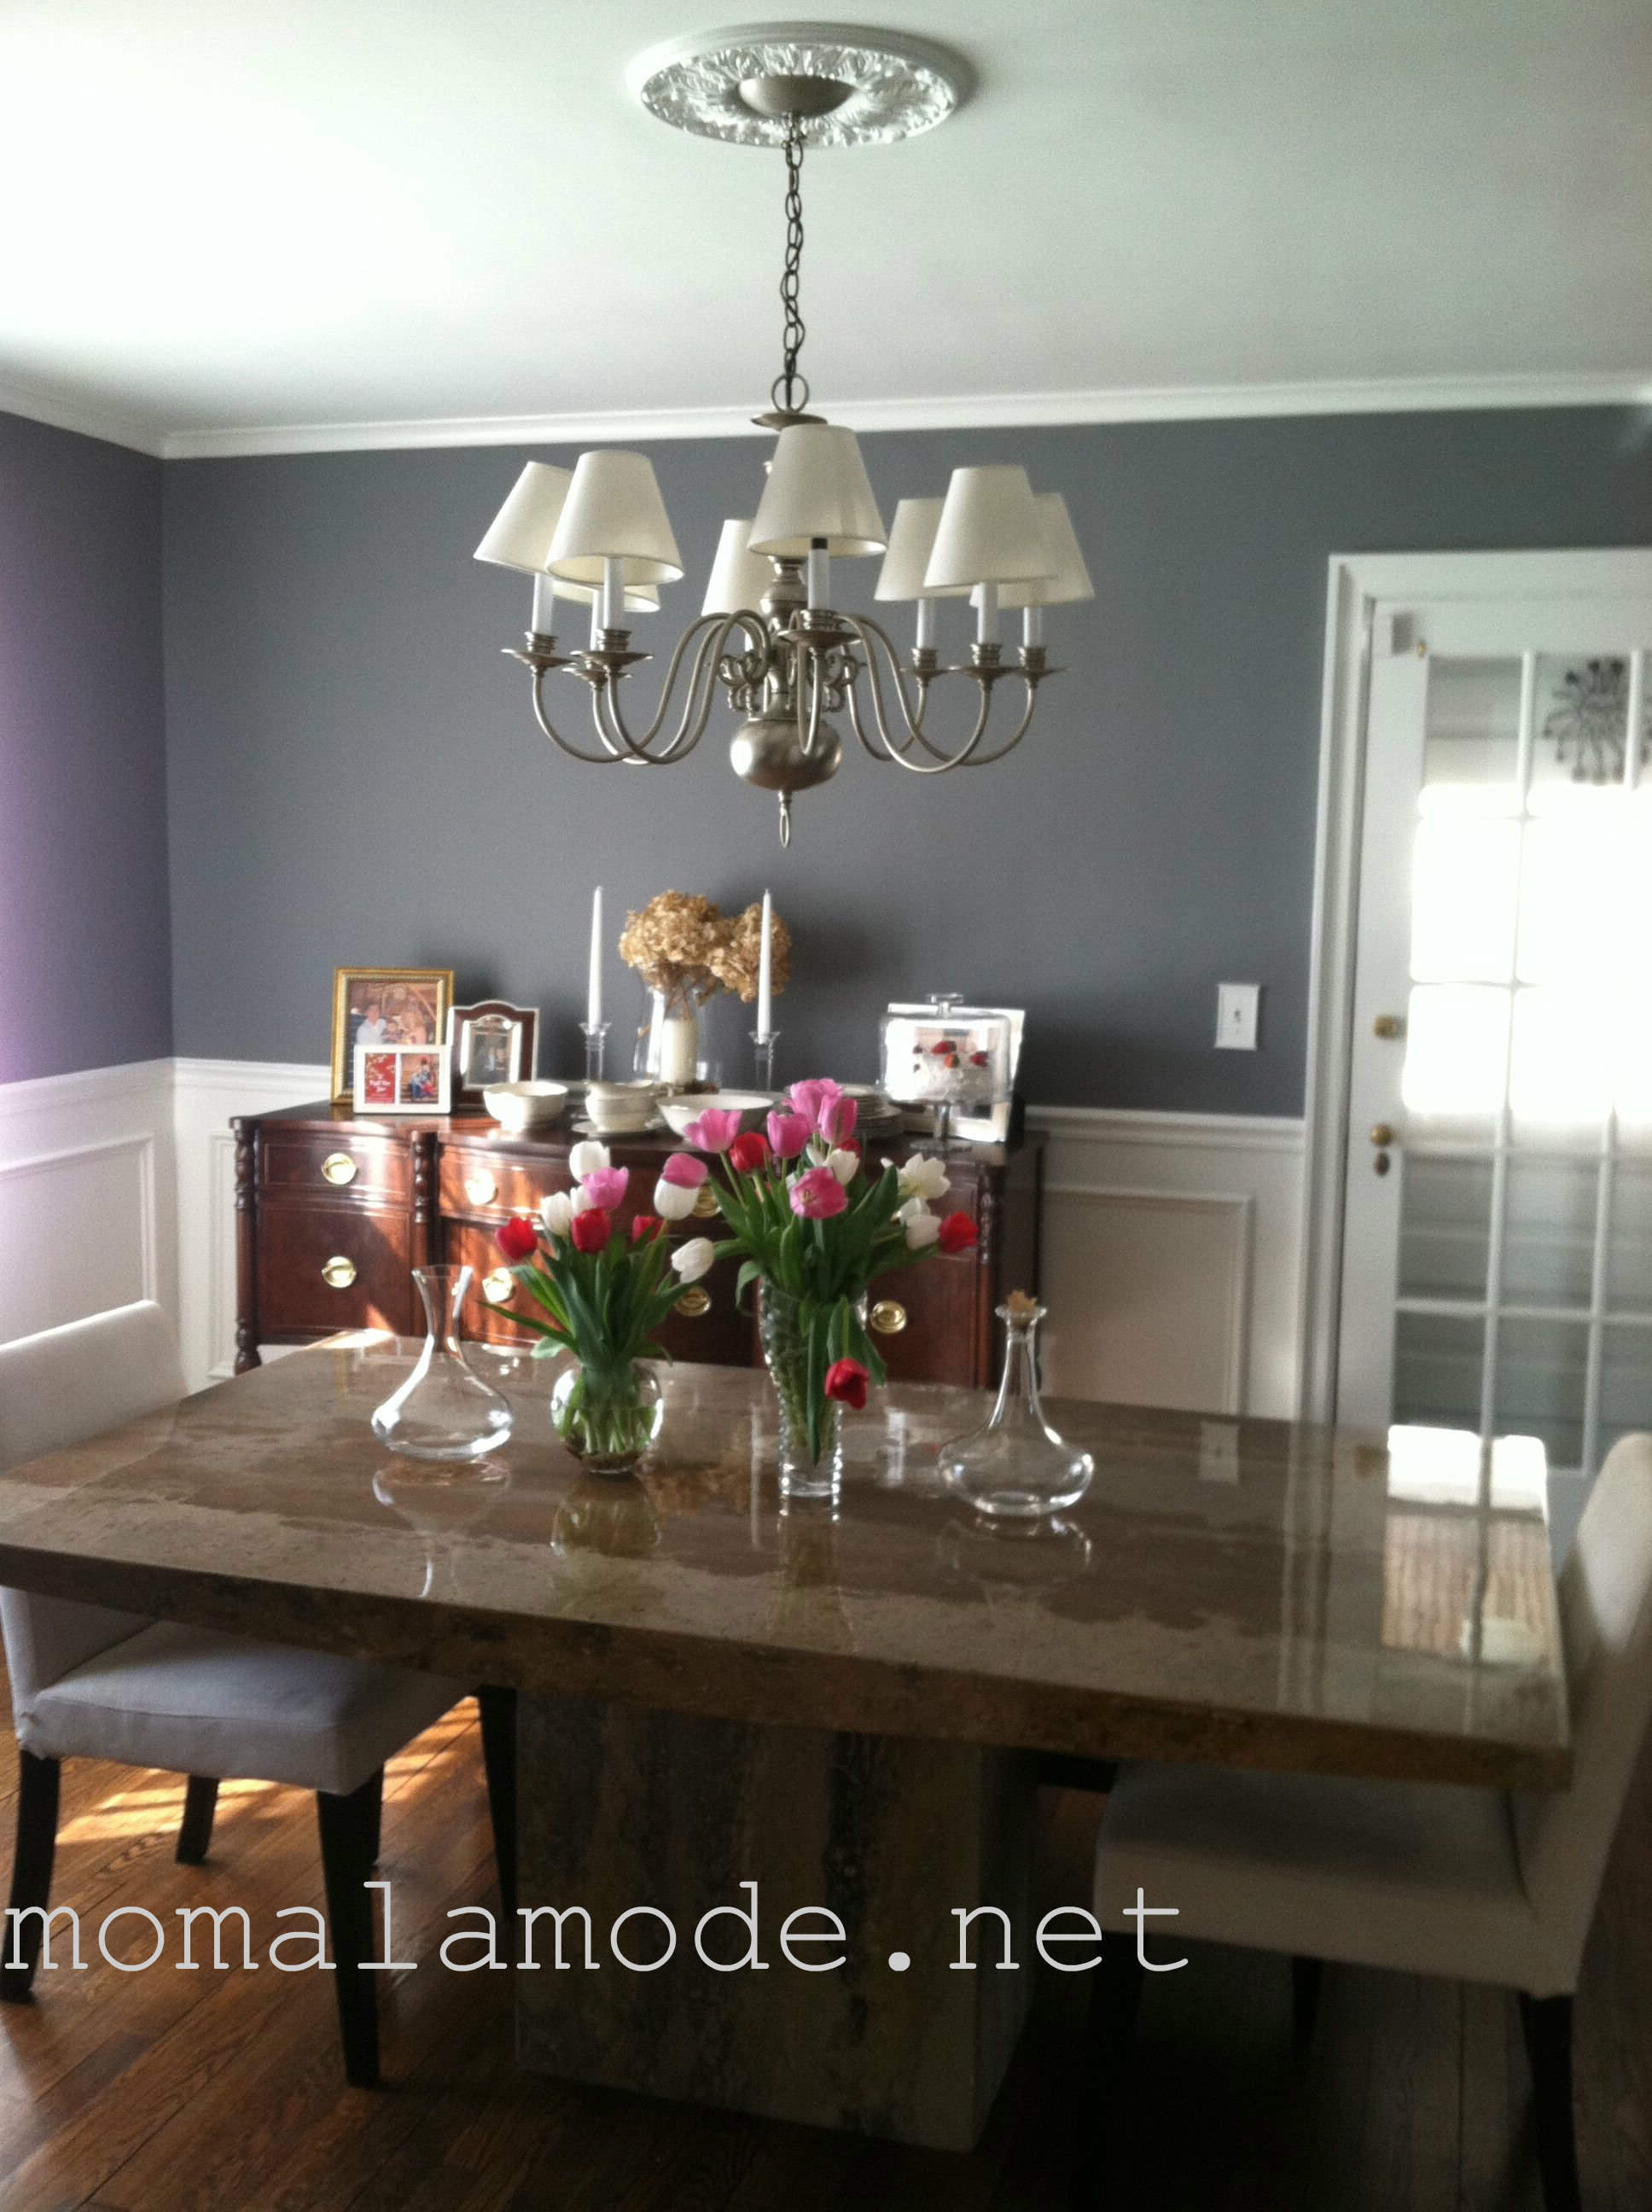 Our Grayte New Dining Room  Mom A La Mode